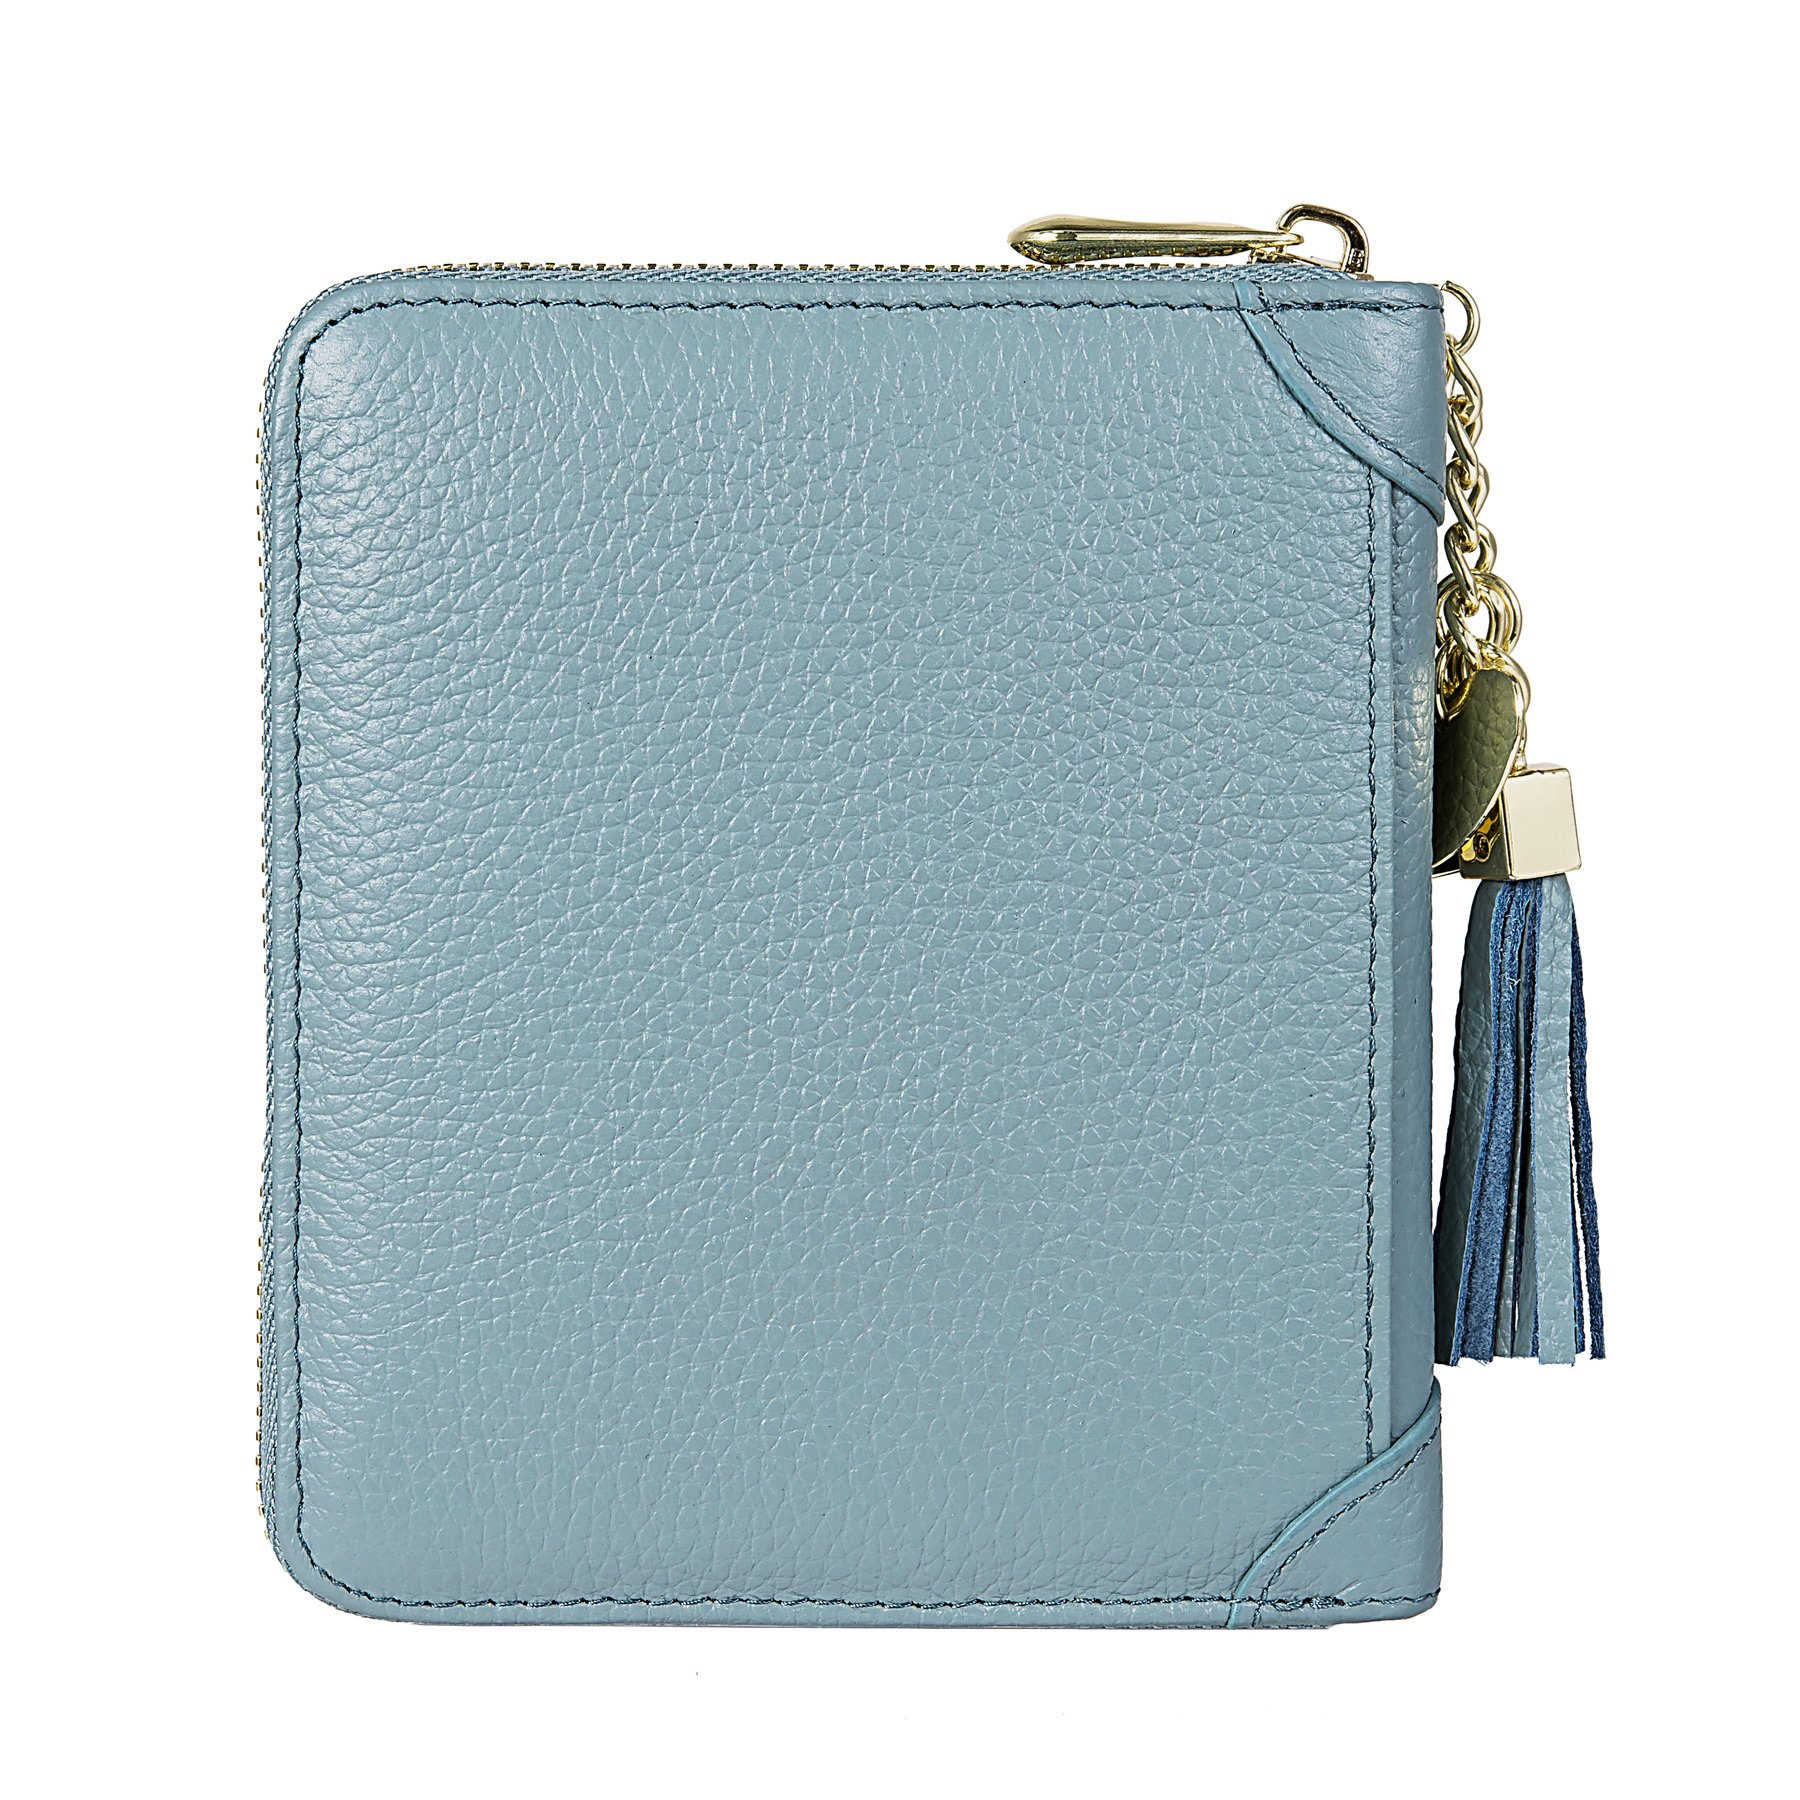 SafeCard 40 Card Solts Women's Credit Card Case Wallet 2 ID Window and Zipper Card Holder (40 Card Blue) by ZORESS (Image #3)